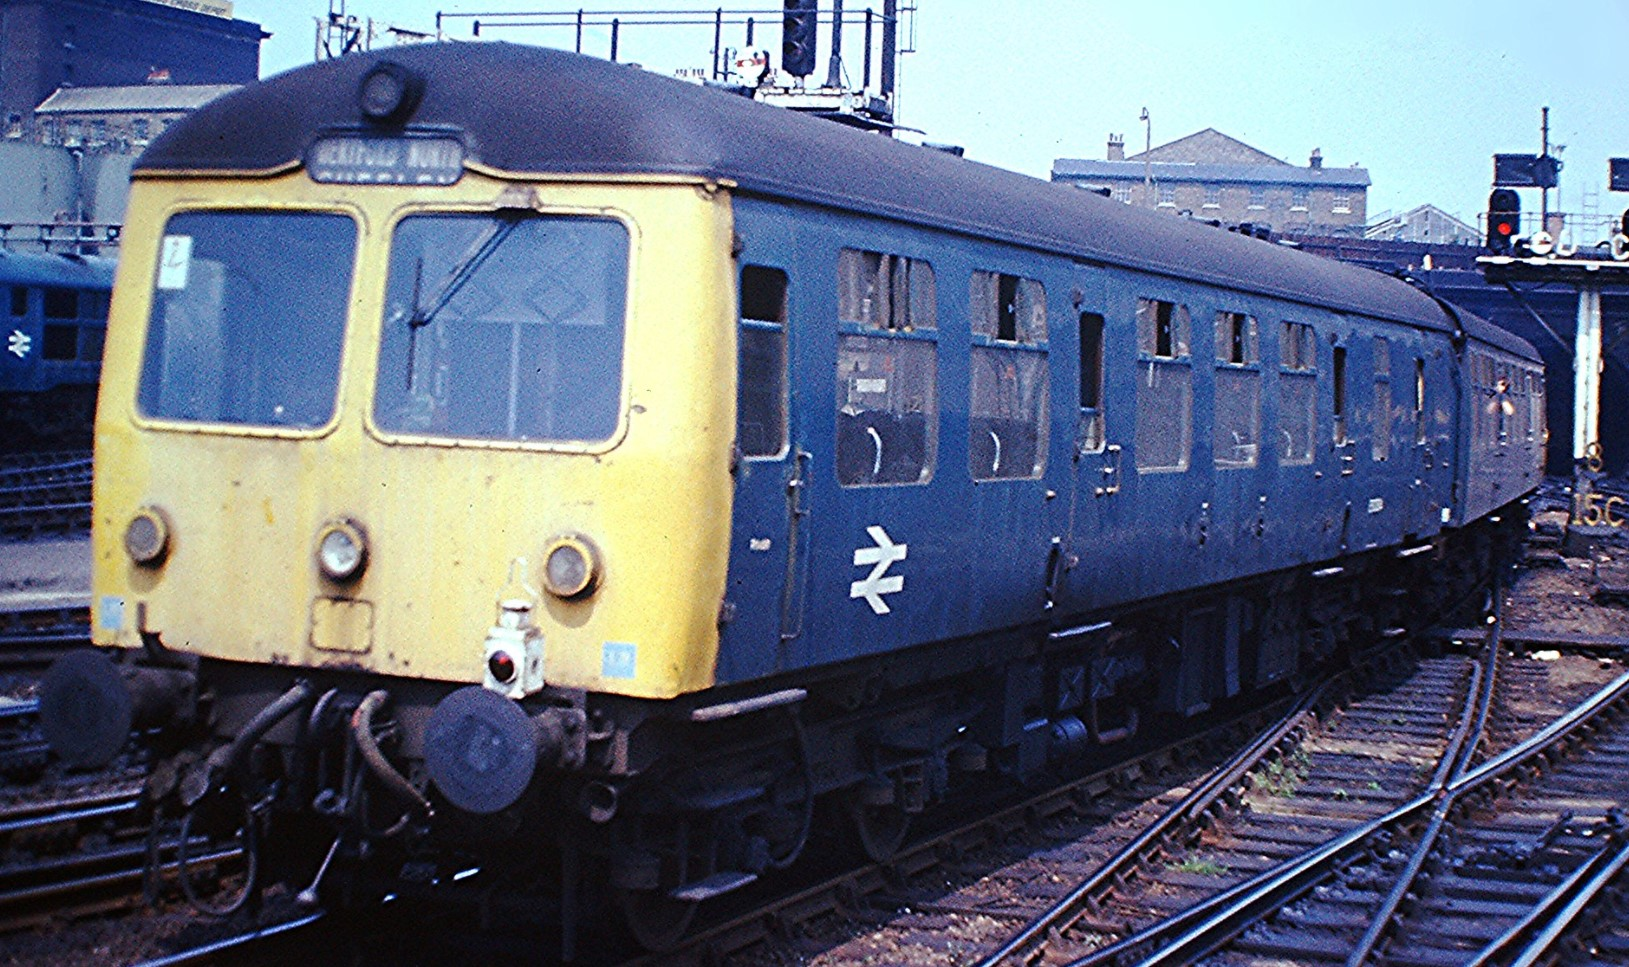 106 DMU consisting of E50367 and E56123 at London Kings Cross in July 1975. ©Hugh Llewelyn